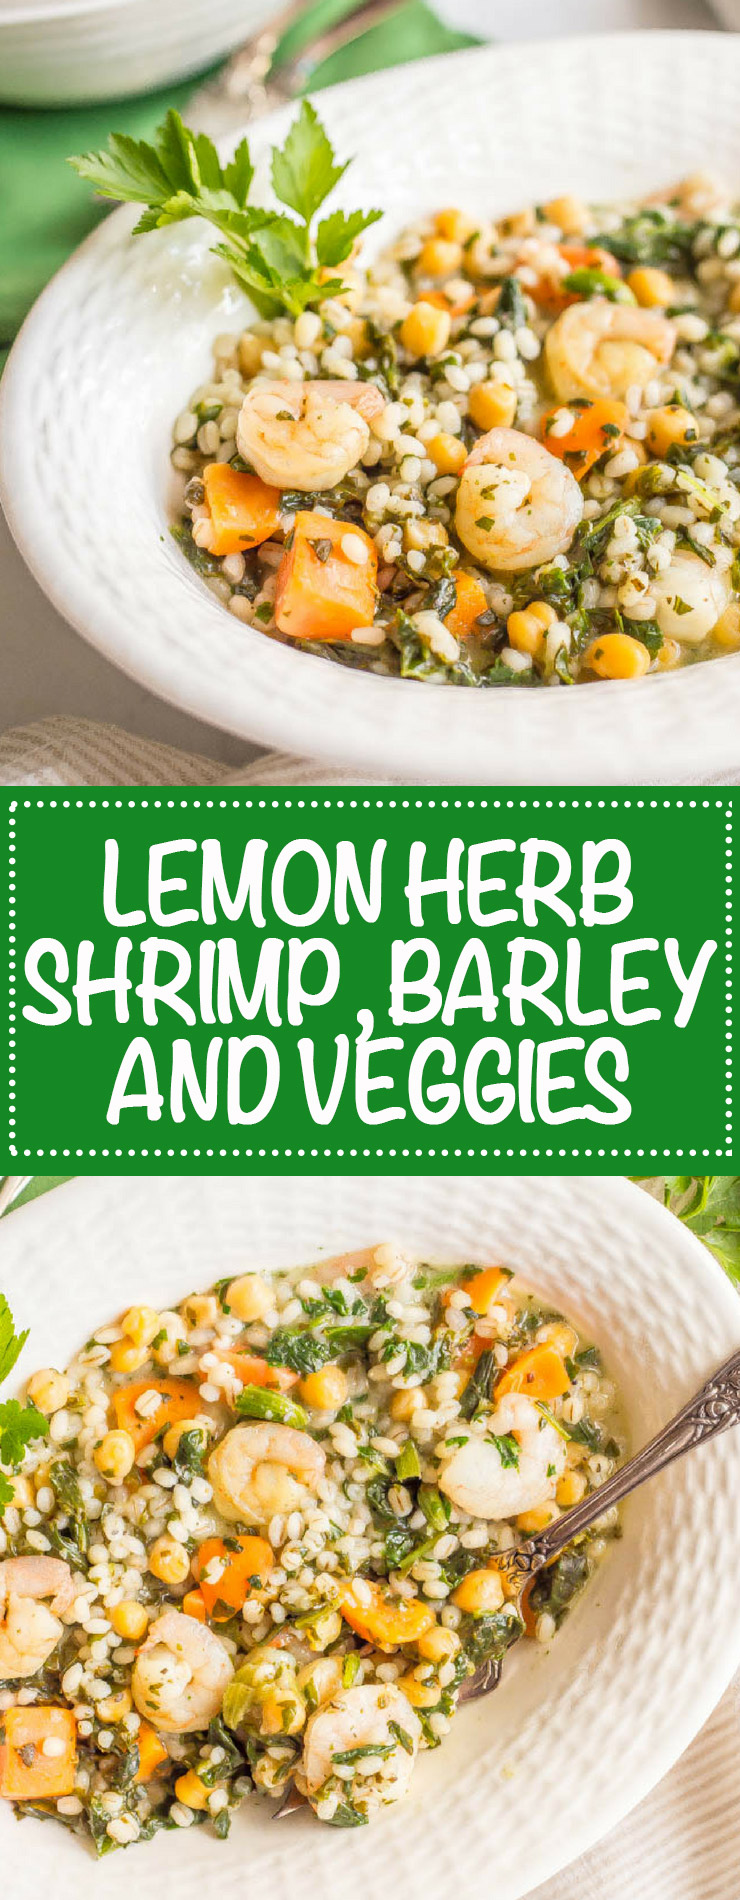 Photo collage of Lemon herb shrimp and veggies with barley